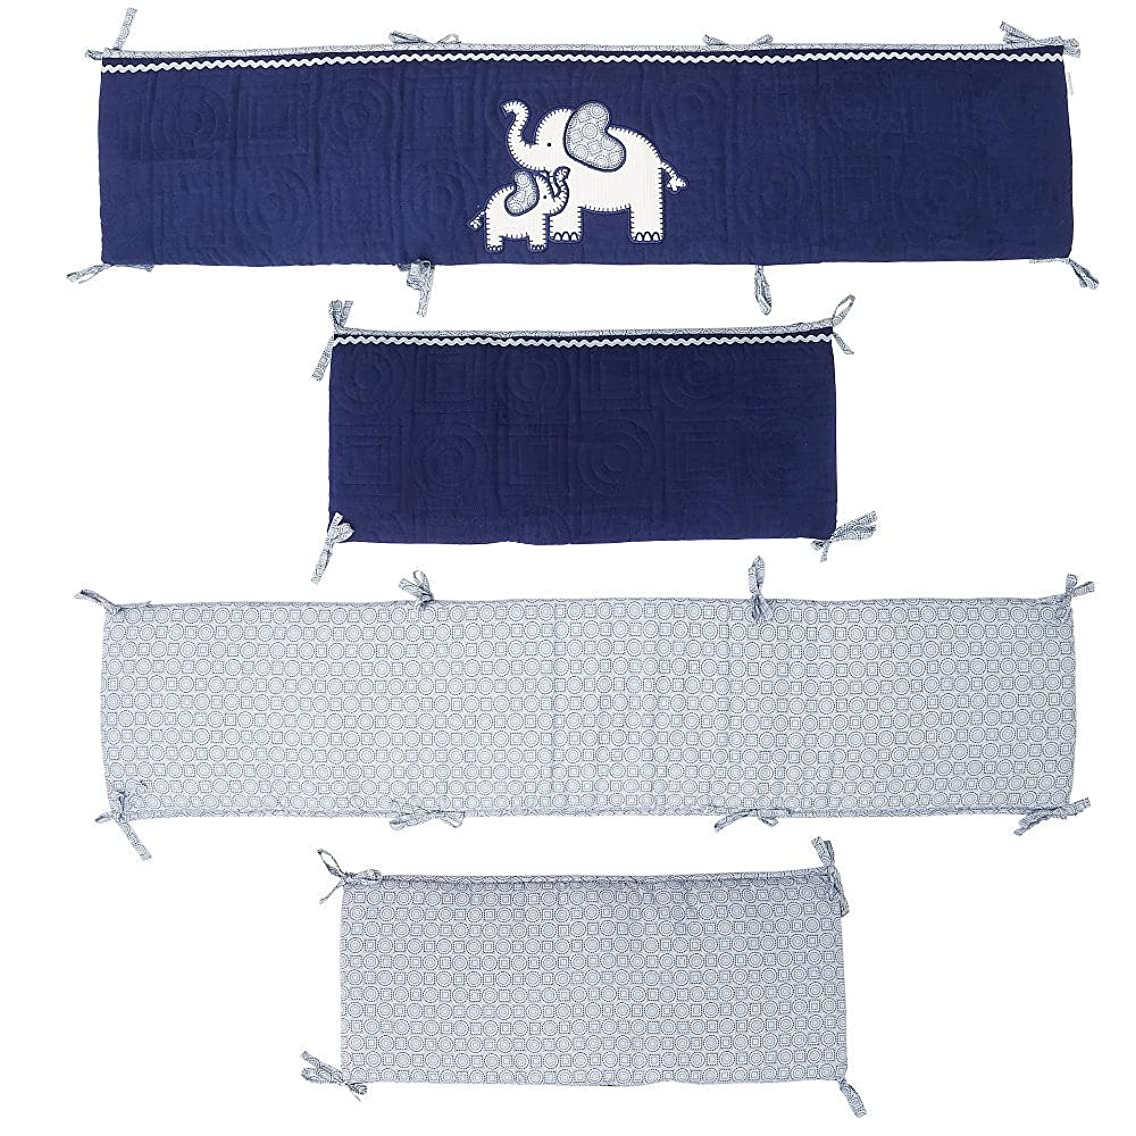 Koala Baby First Love 4 Piece Crib Bumper Set - Elephant - Navy/Light Blue